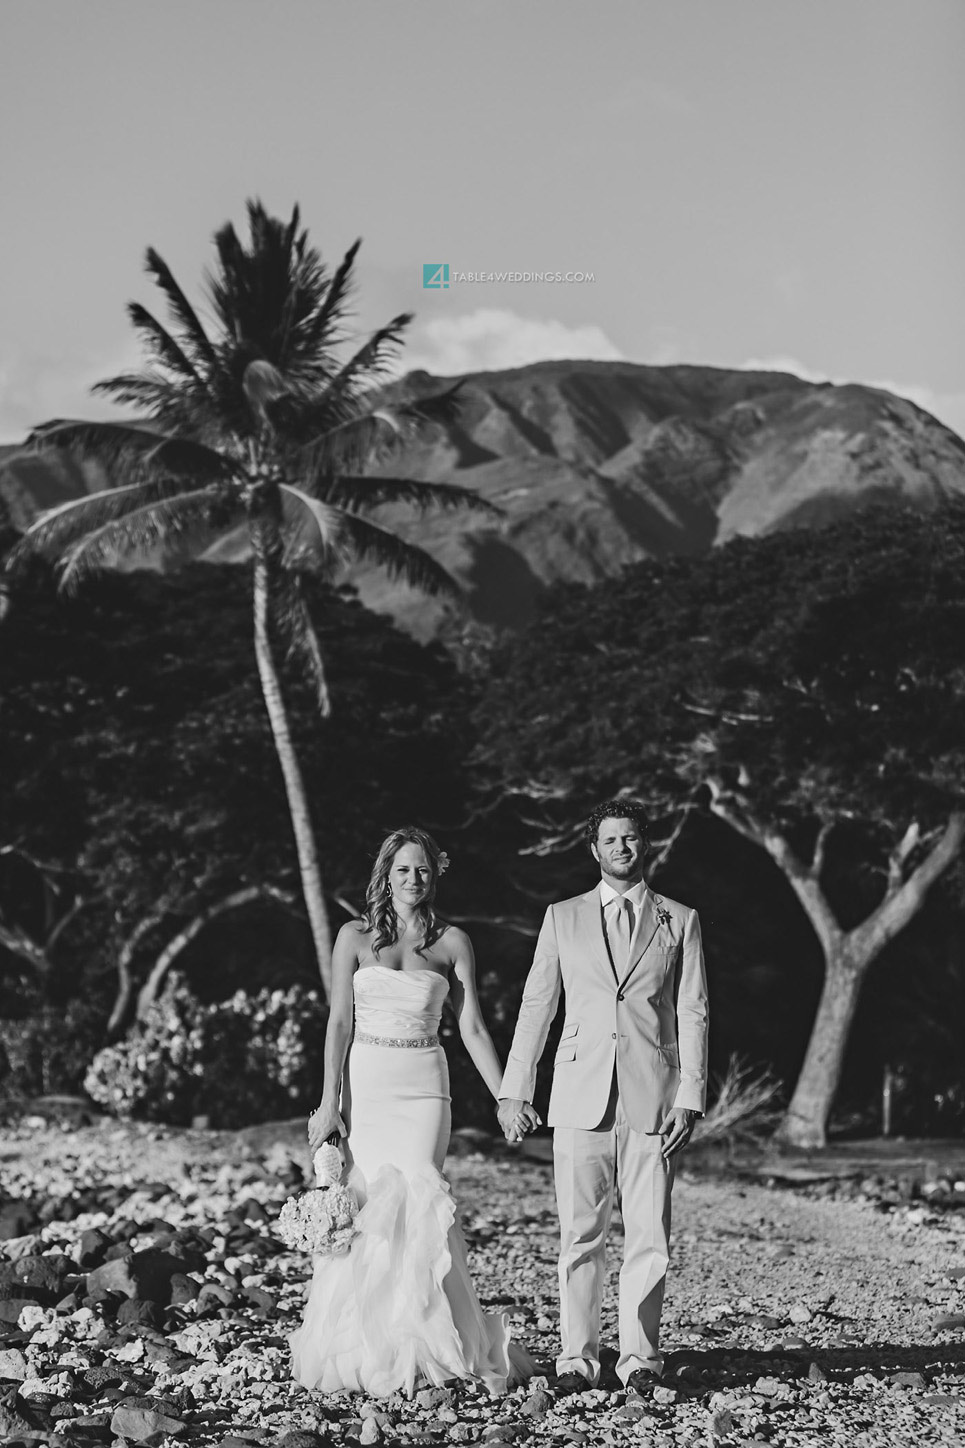 olowalu plantation house wedding sunset portraits, maui wedding photography, hawaii wedding photography